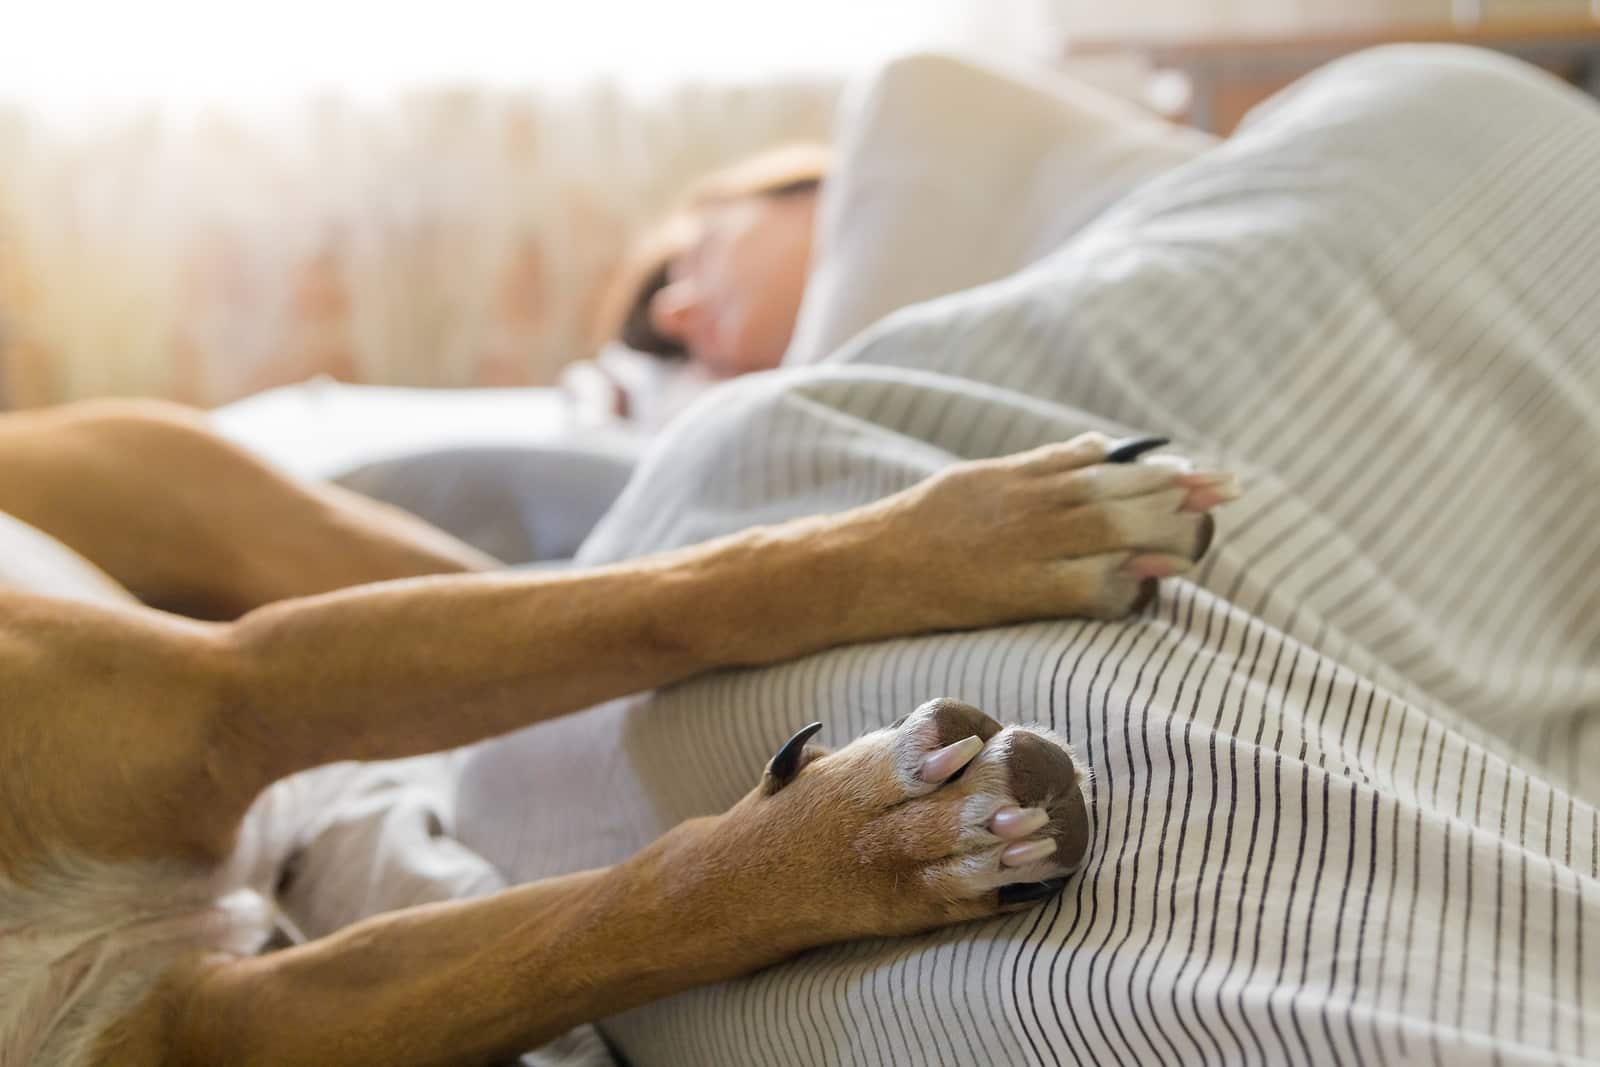 Dog and human sleep in bed. Image of dog paws in bed with a human sleeping in the background on a bright sunny morning.